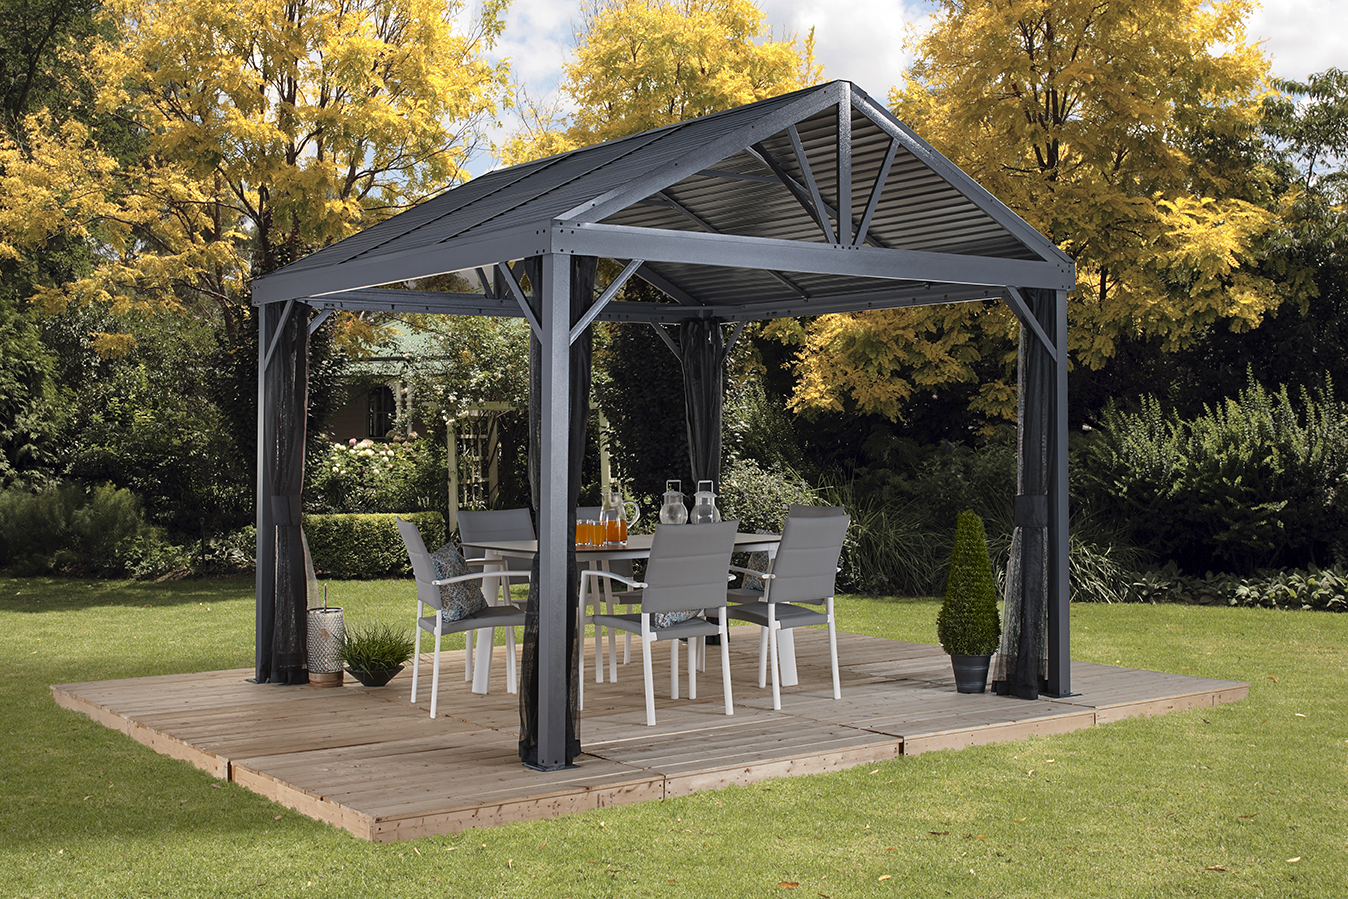 Sojag SANIBEL I 10x10 Gazebo, galvanised steel roof & mosquito netting by SOJAG